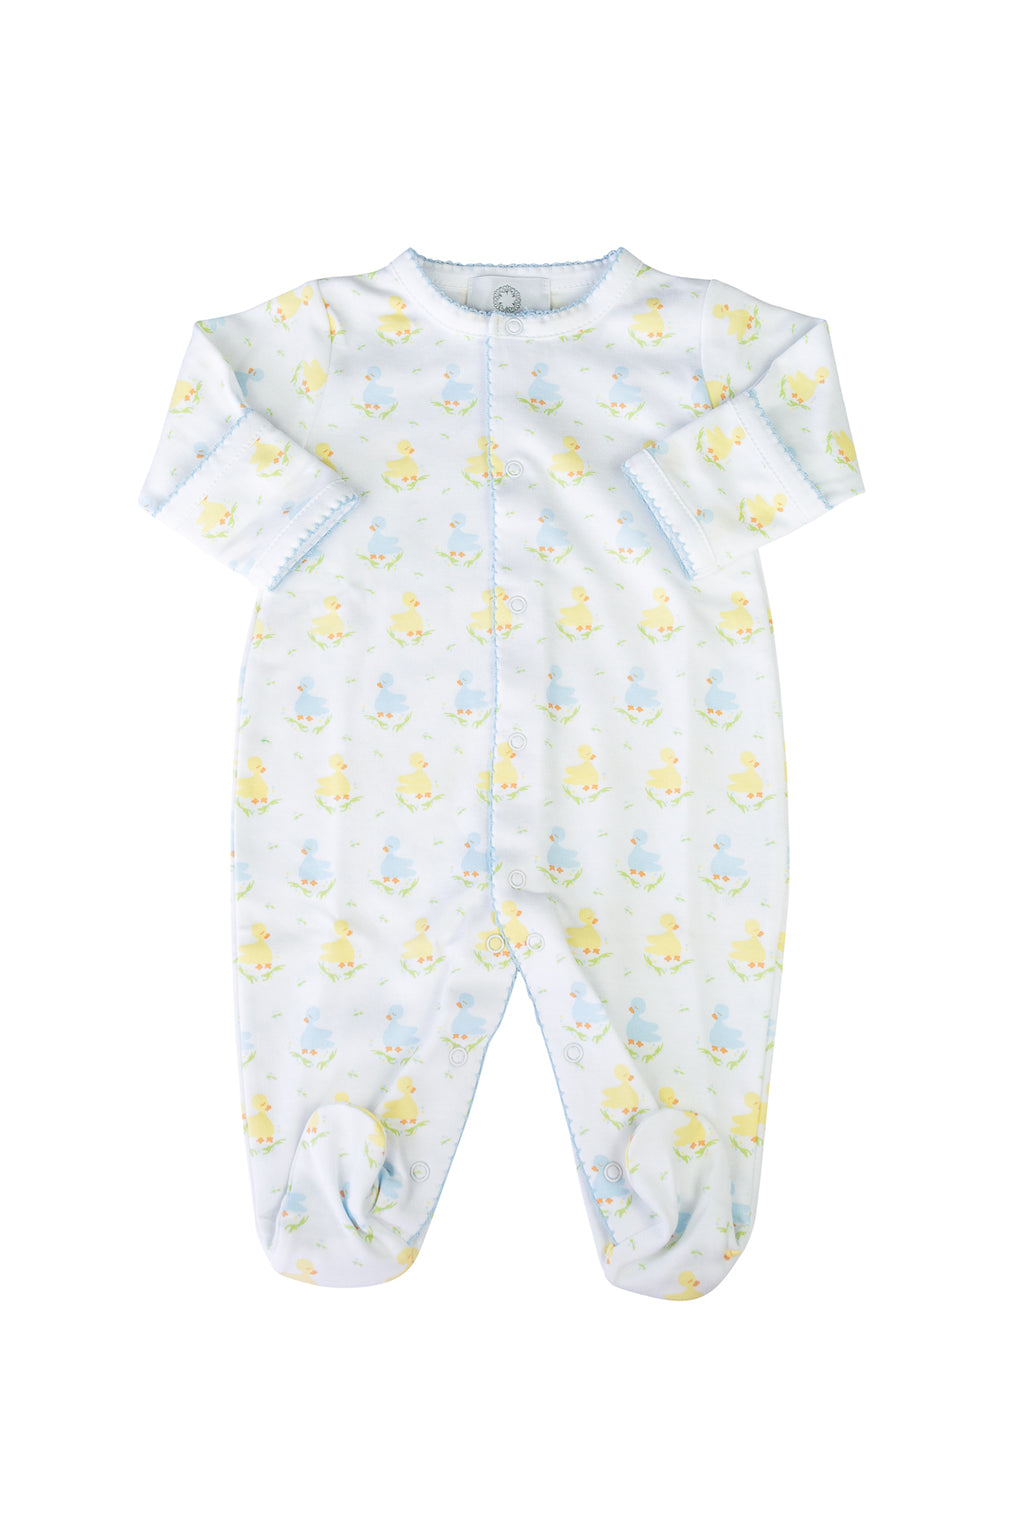 Pre-Order Blue Ducks - Footed Pajamas - Born Childrens Boutique